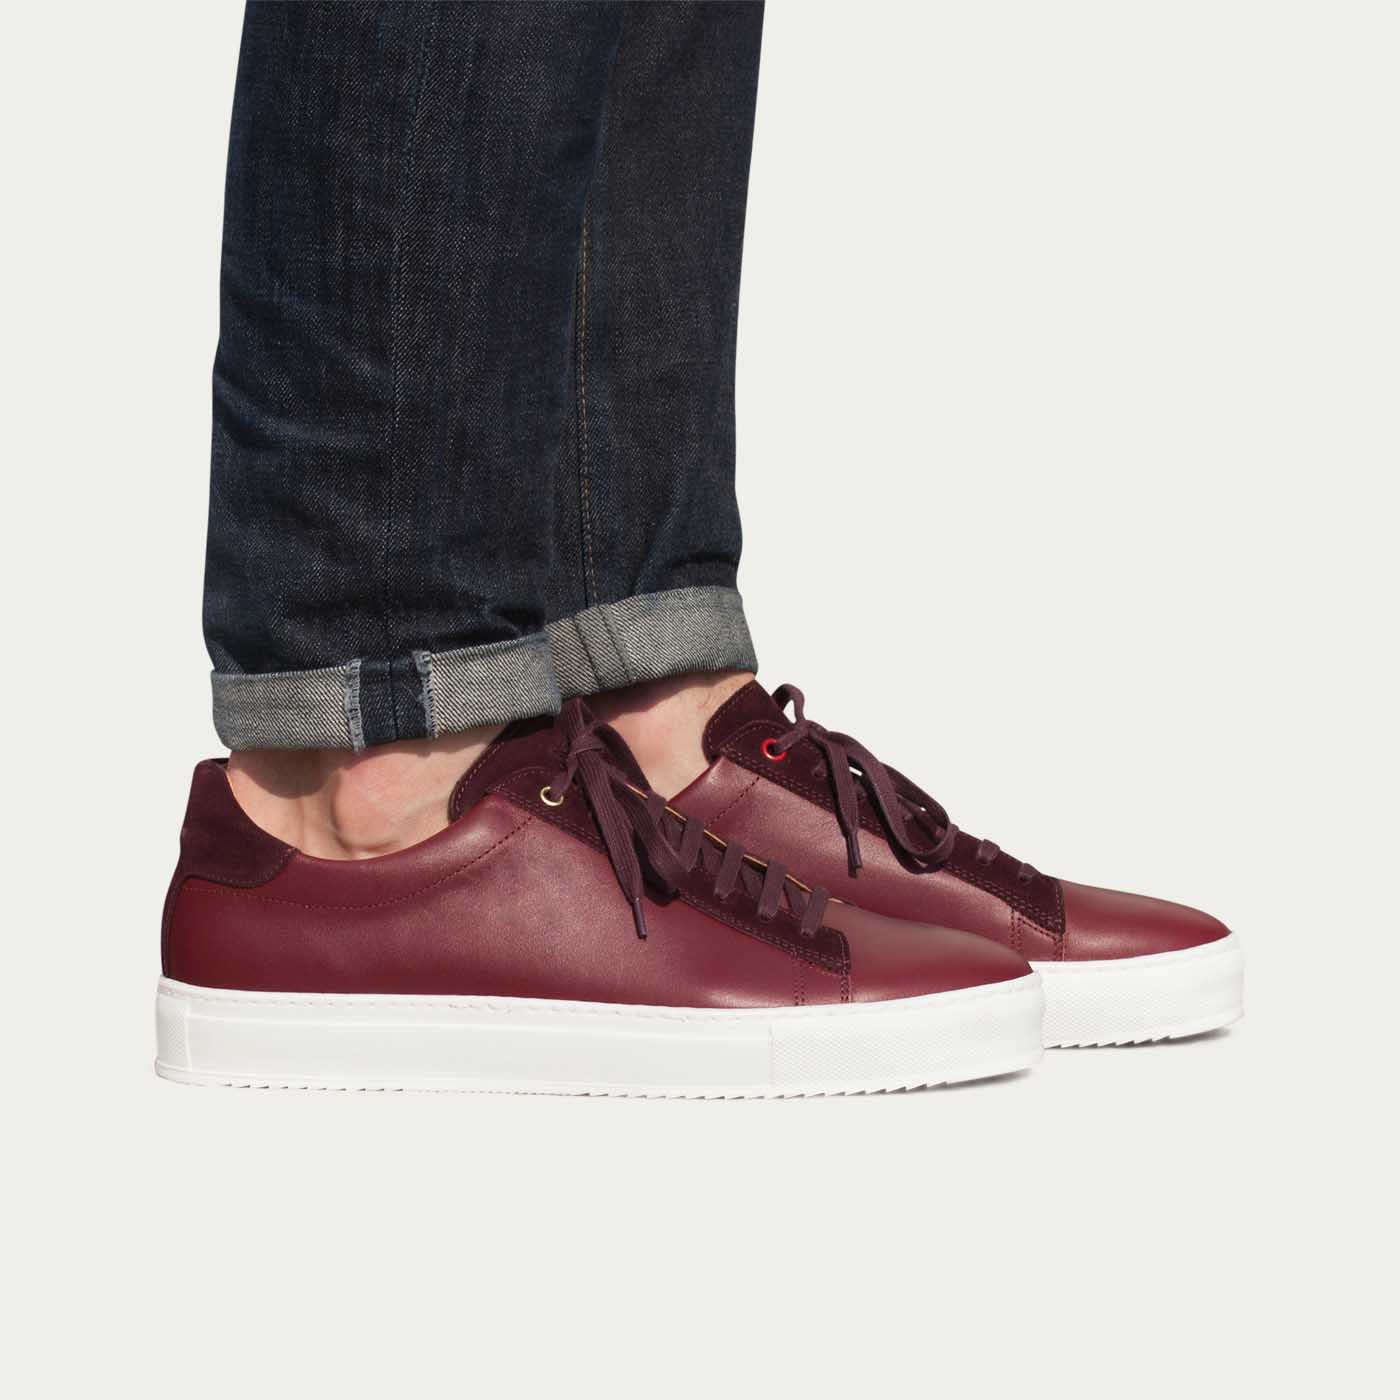 Burgundy Leather Taranta Sneakers    4